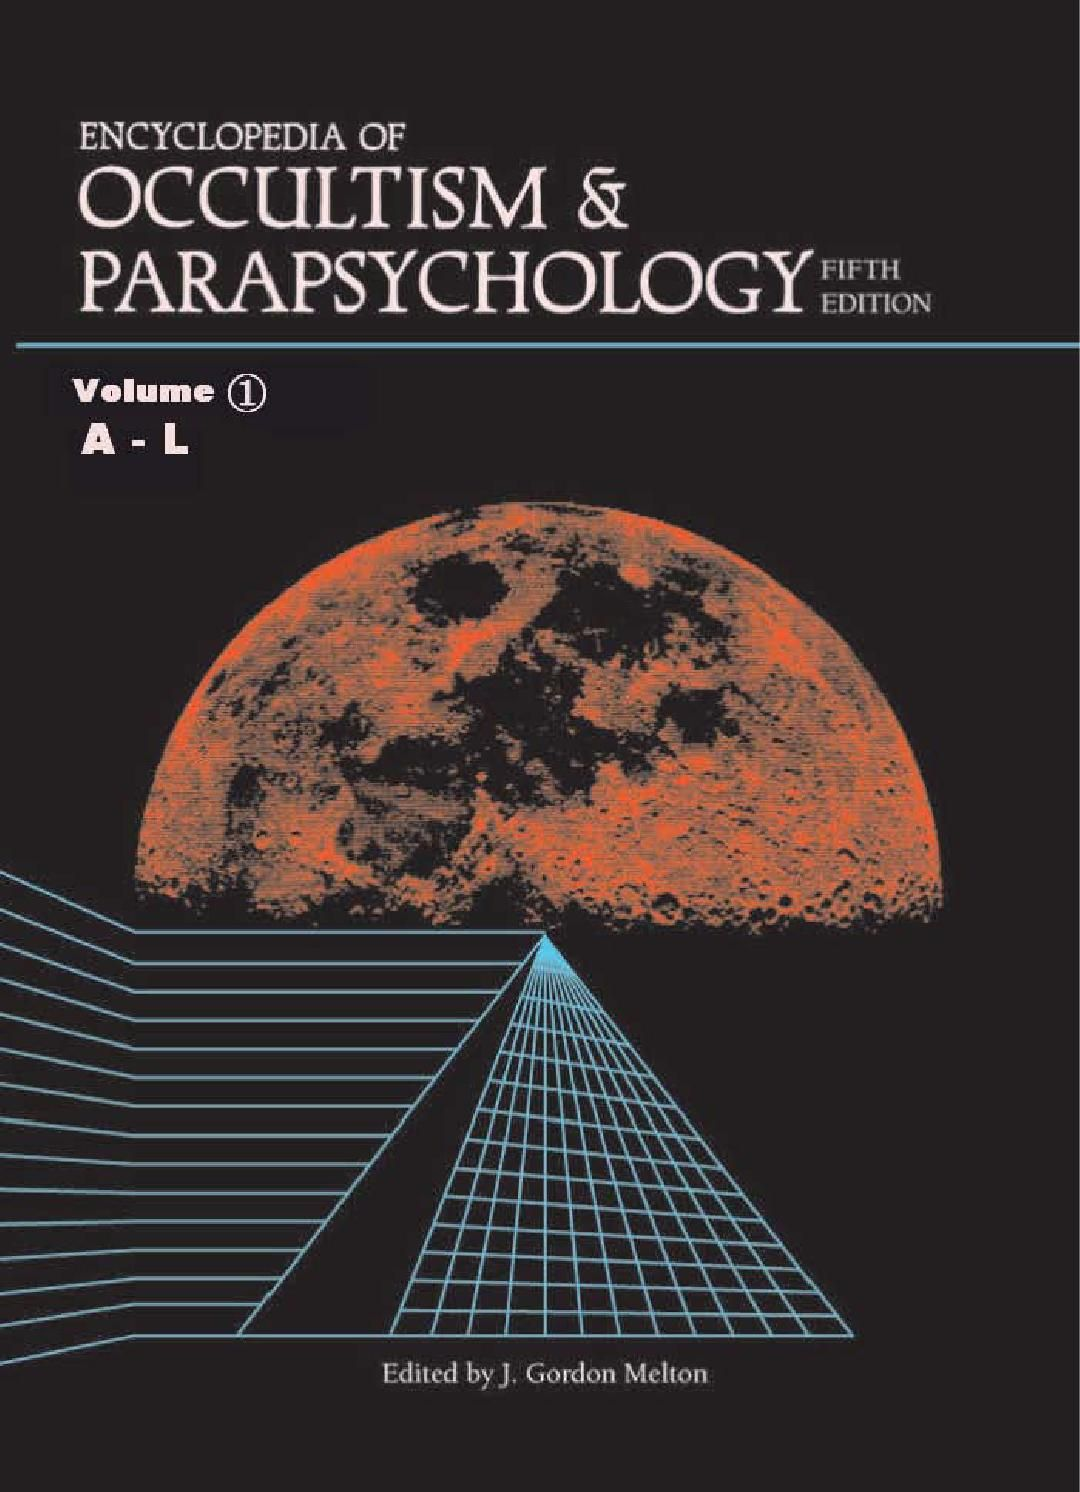 understanding parapsychology Within the uk and on the european continent, there appears to be a well-established number of parapsychology research groups situated within higher.